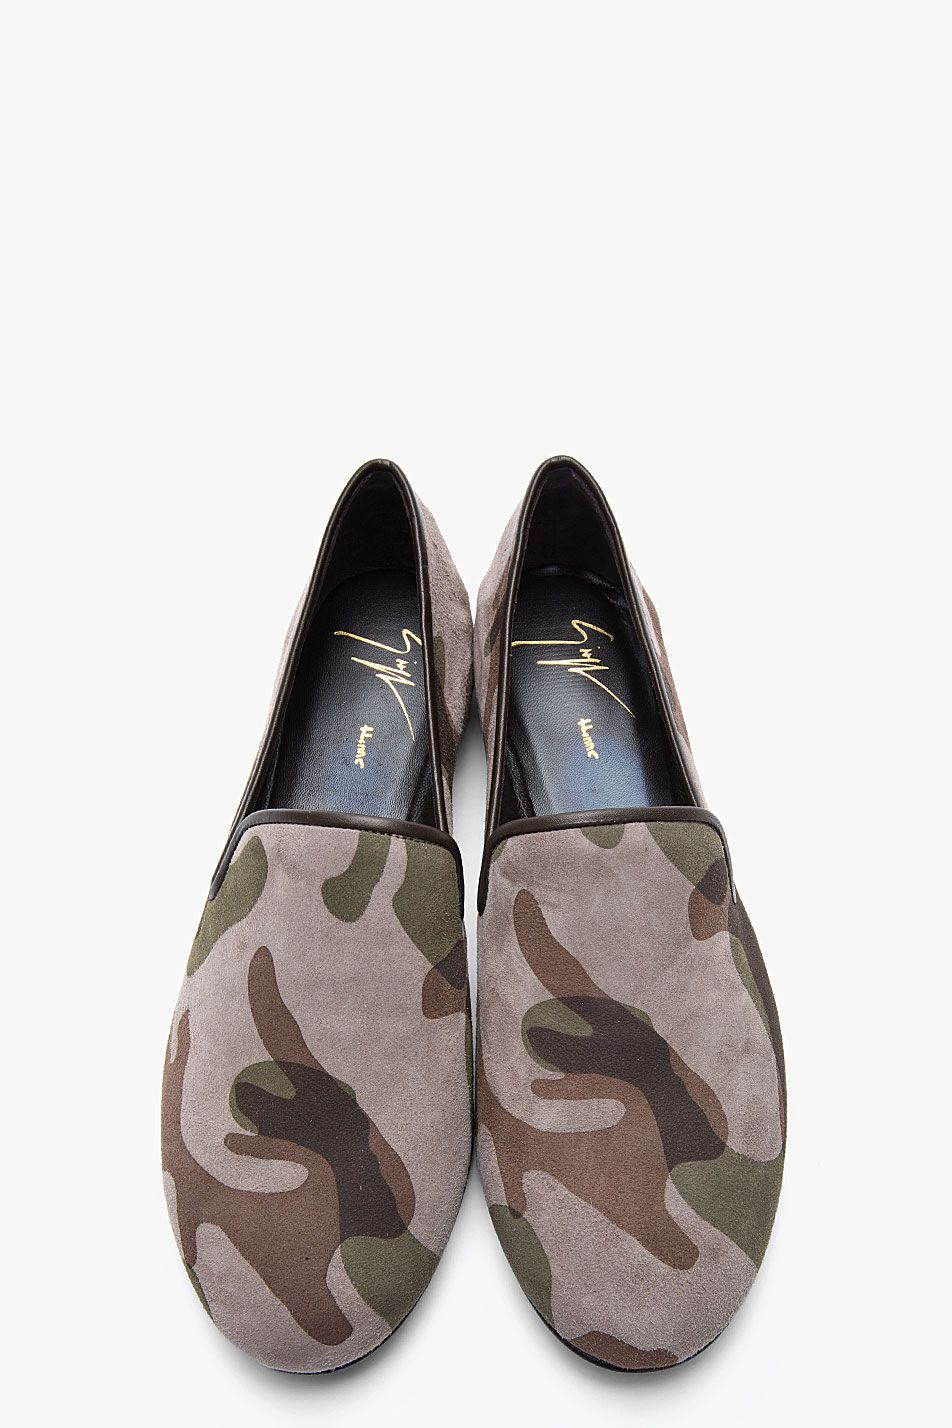 26c080288cab0 GIUSEPPE ZANOTTI Taupe and green camo Kevin 10 loafers Male Shoes, Men S  Shoes,